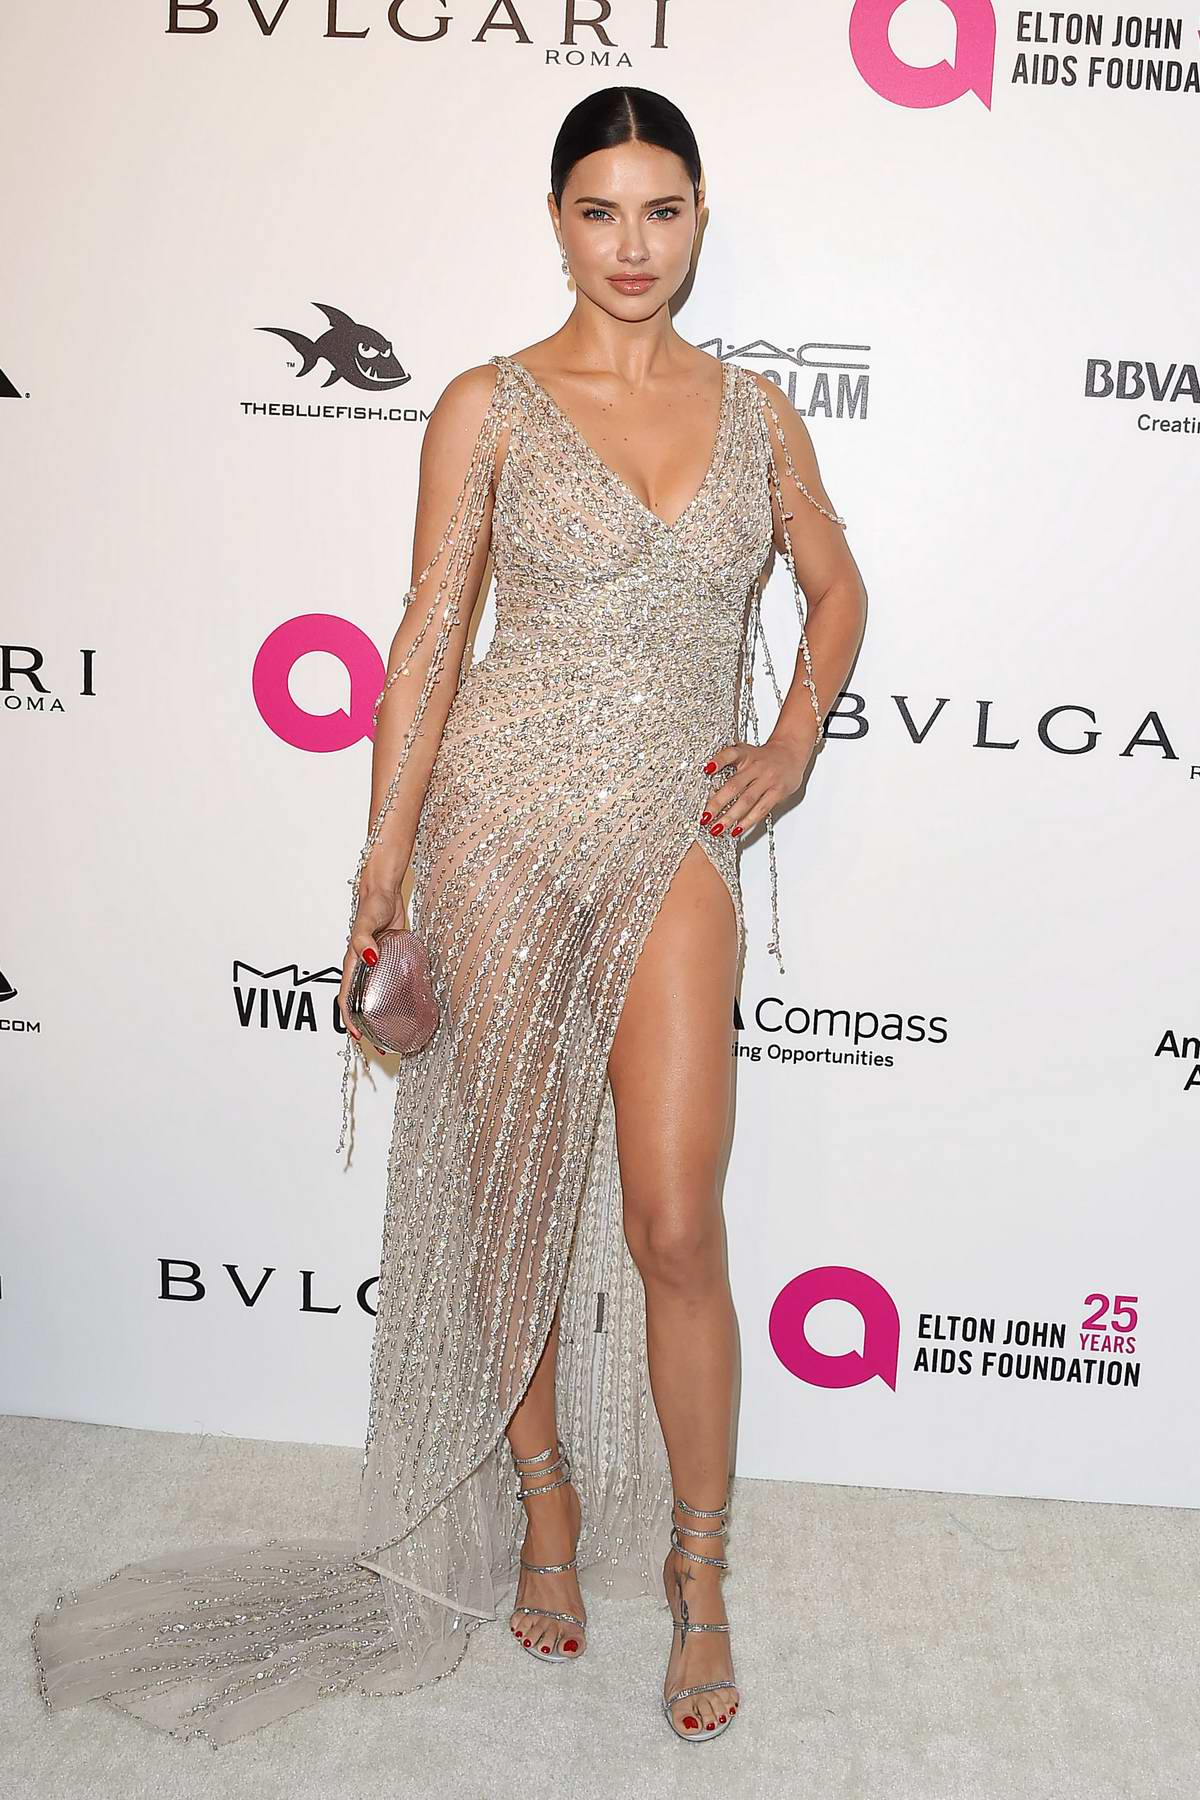 Adriana Lima at the 26th Annual Elton John AIDS Foundation Academy Awards Viewing Party in Hollywood, Los Angeles